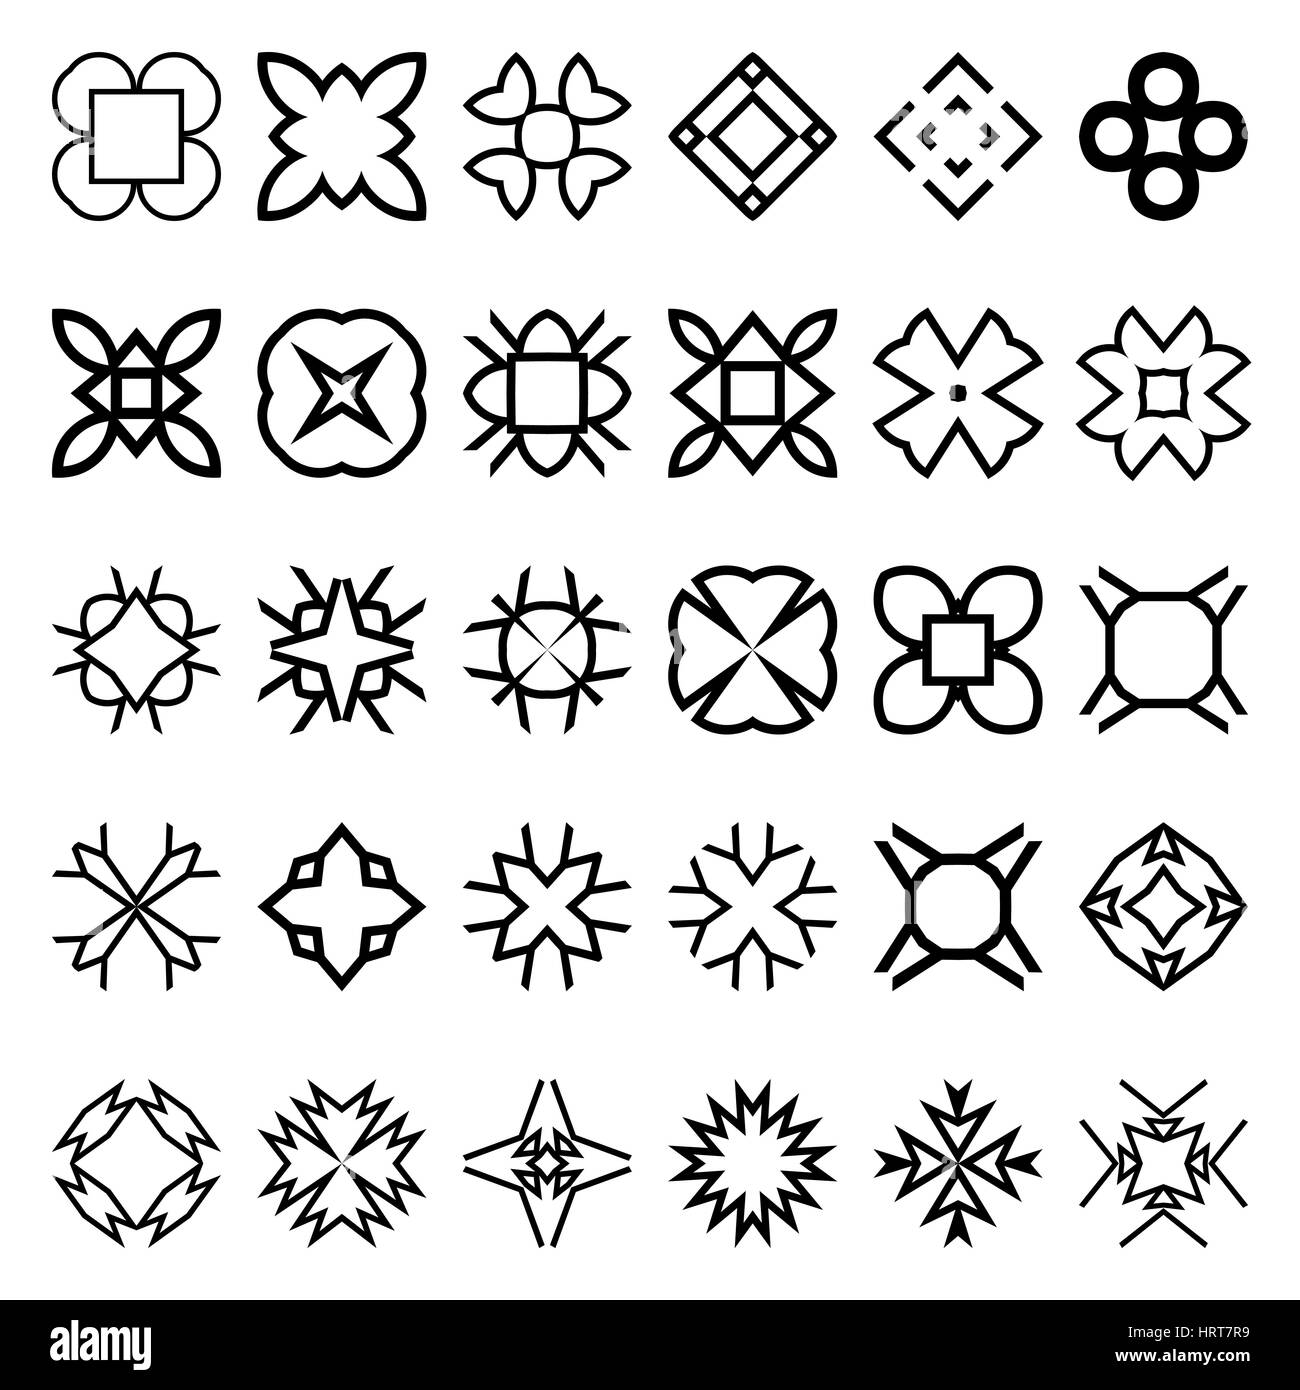 Set of geometric simple forms. Suits for swatches to create seamless patterns. Vector illustration. Abstract creative - Stock Image